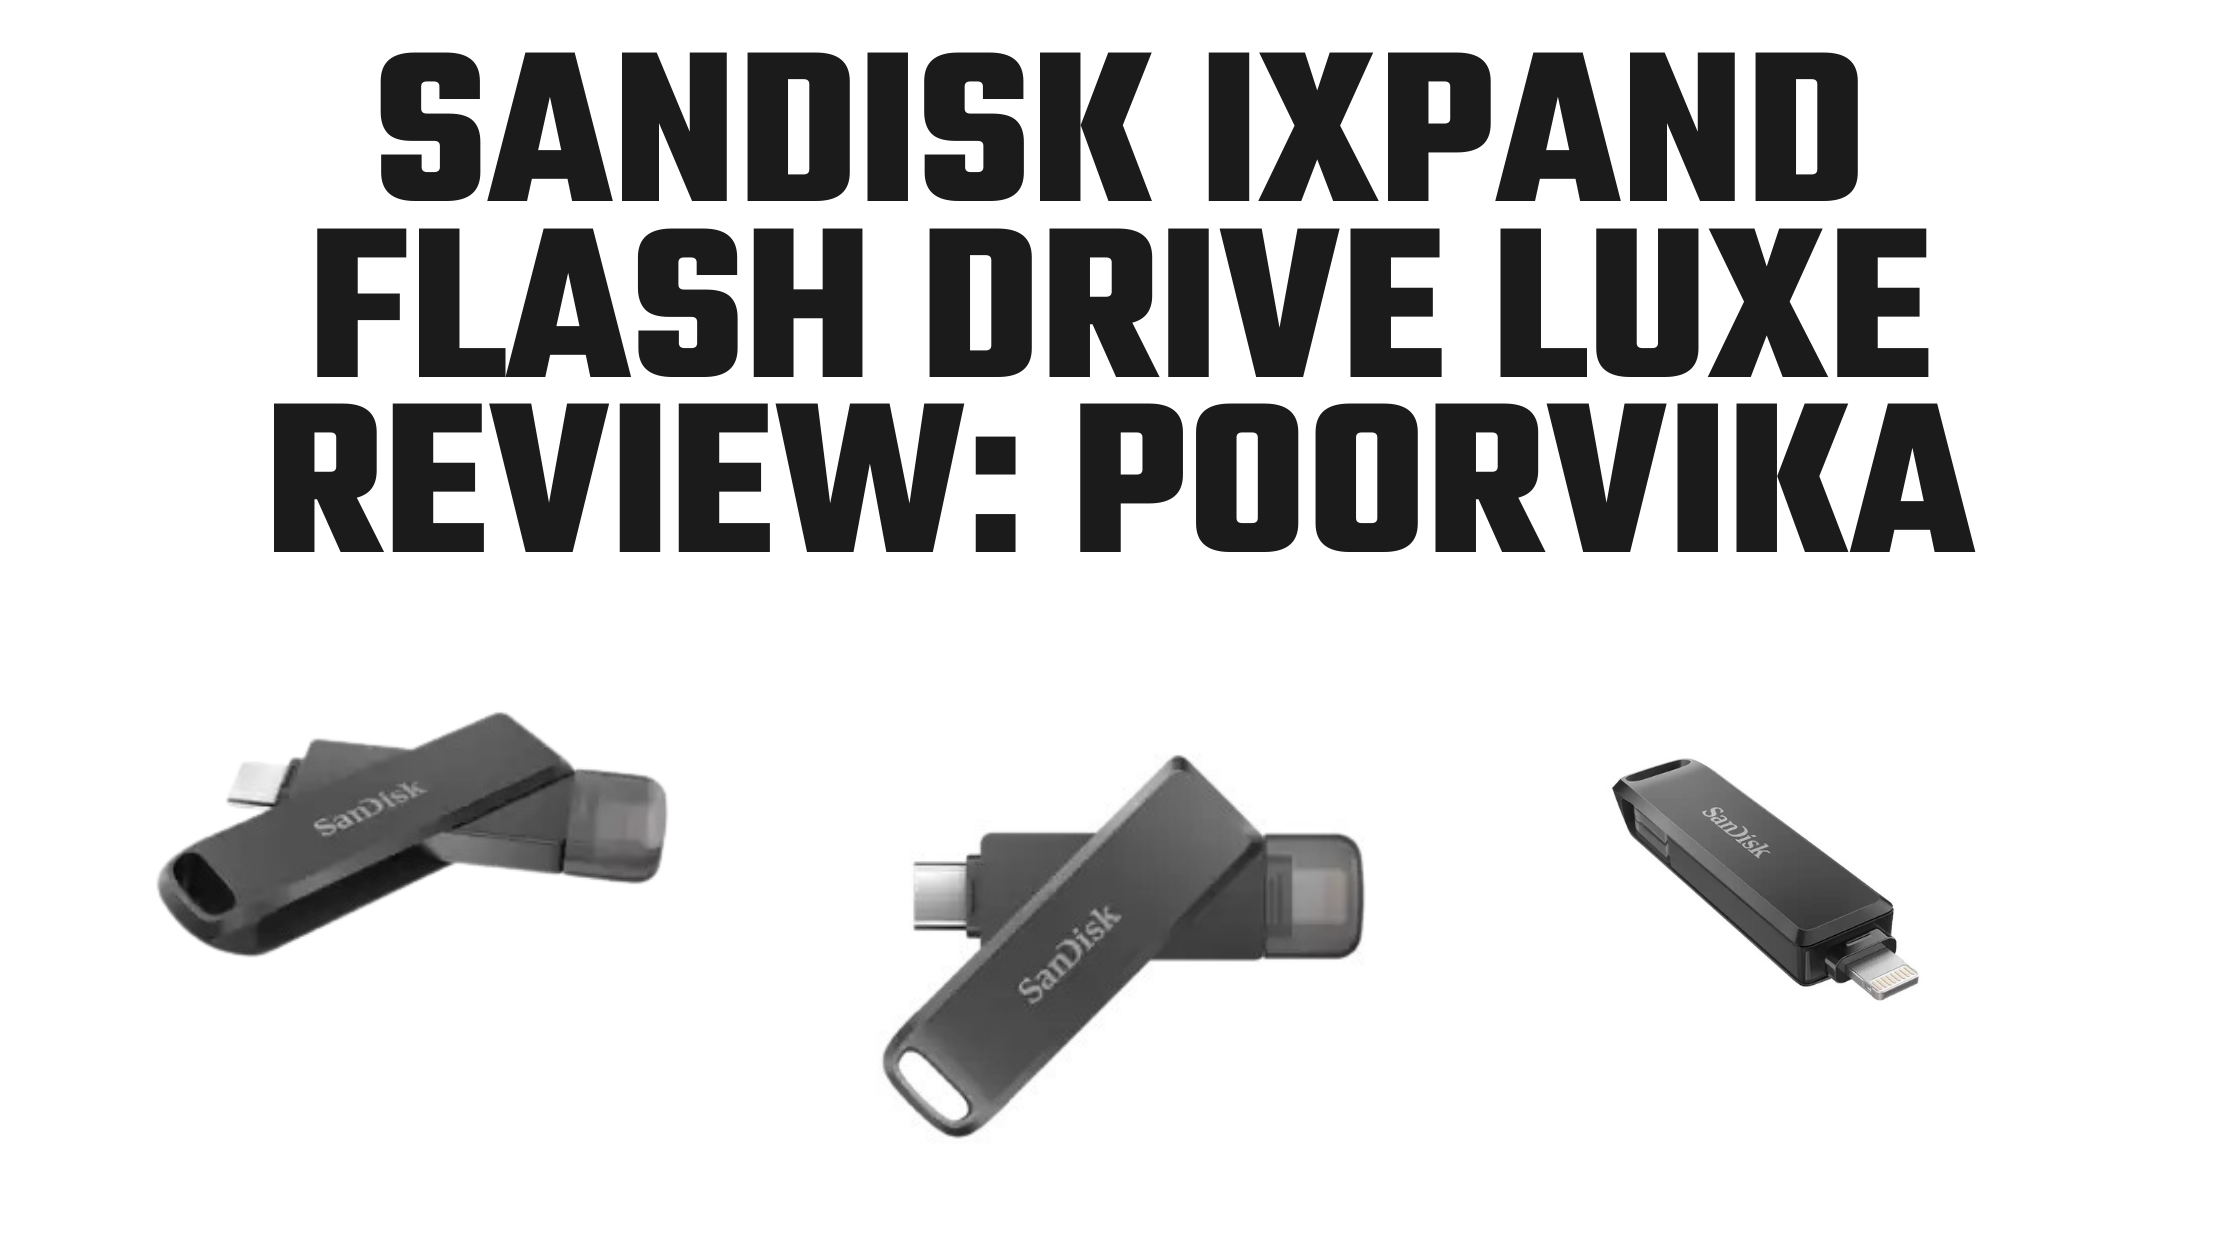 Sandisk-iXpand FlashDrive-Luxe review-Poorvika